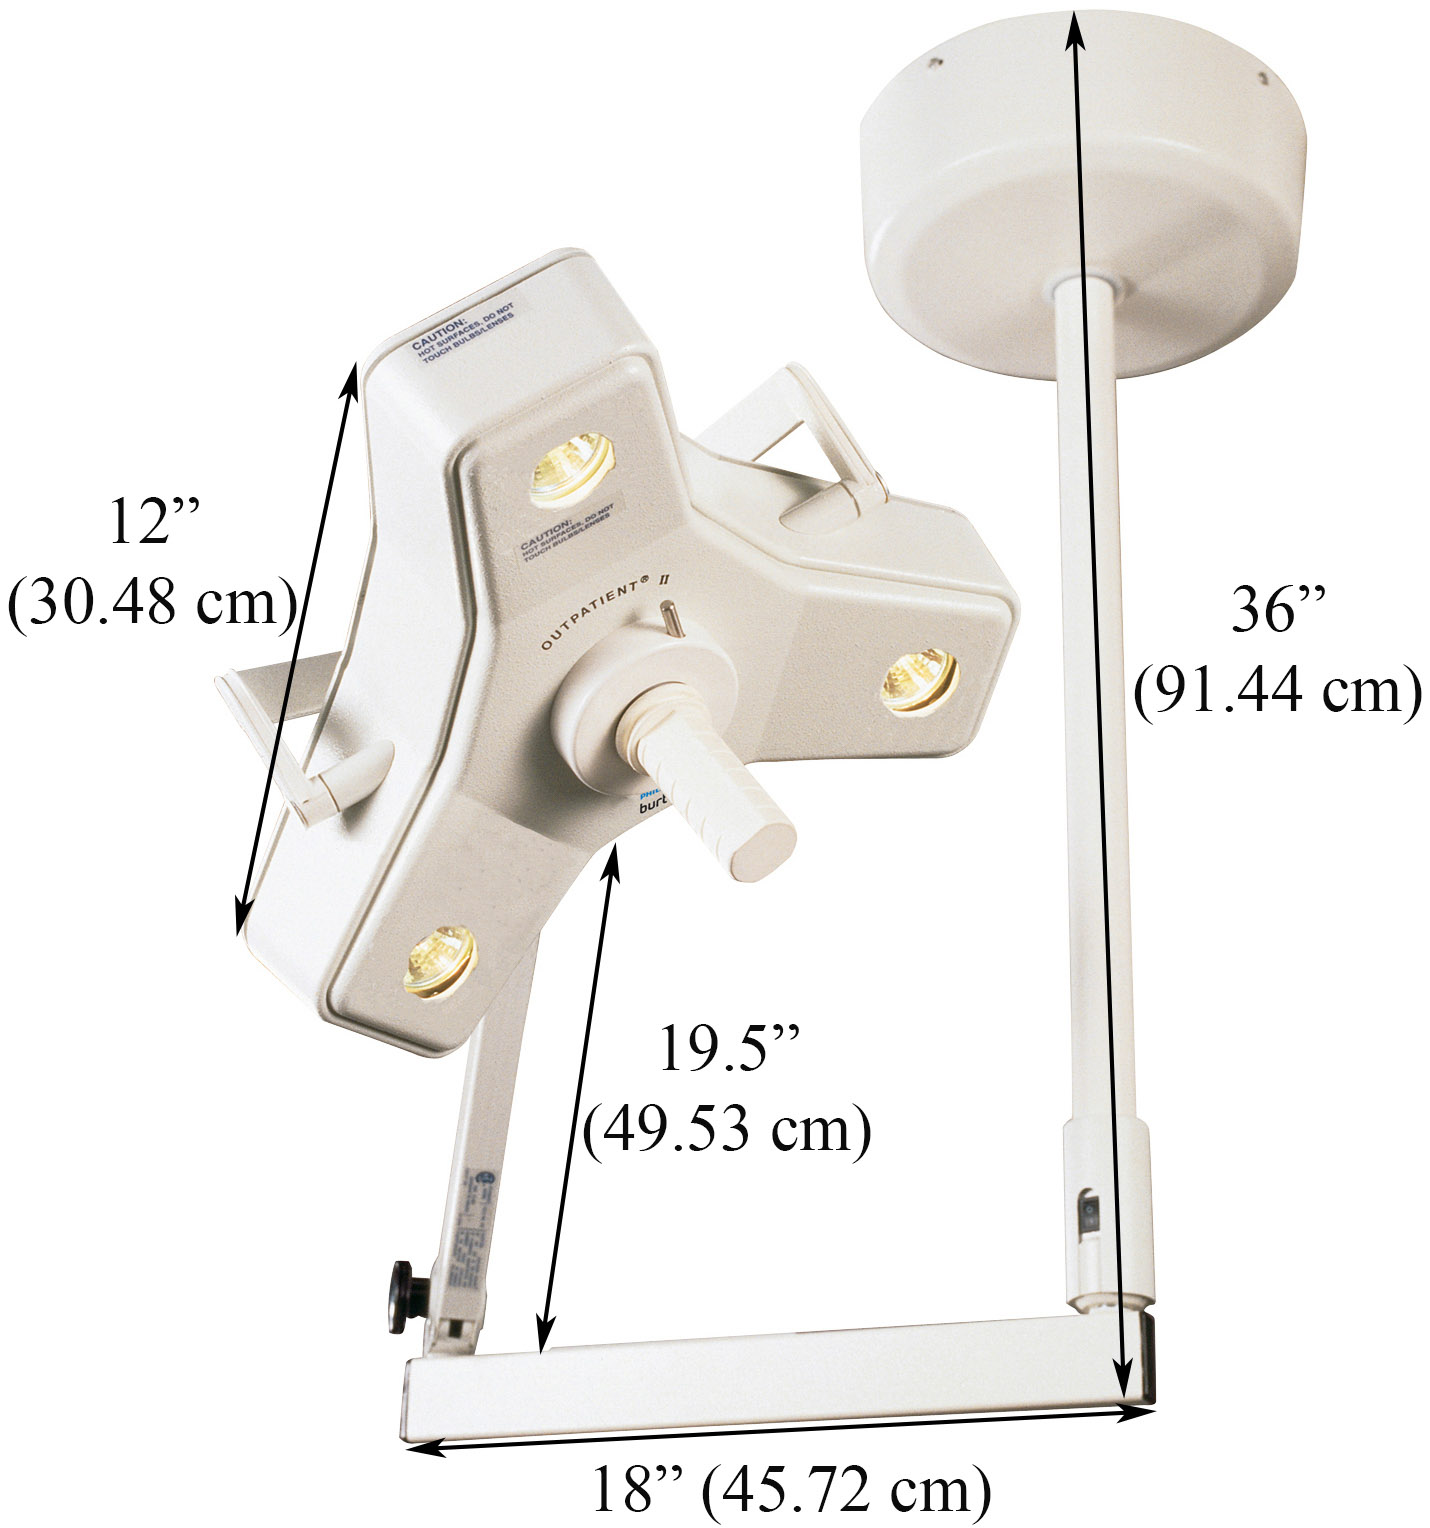 outpatient ii procedure light single head ceiling mount specs